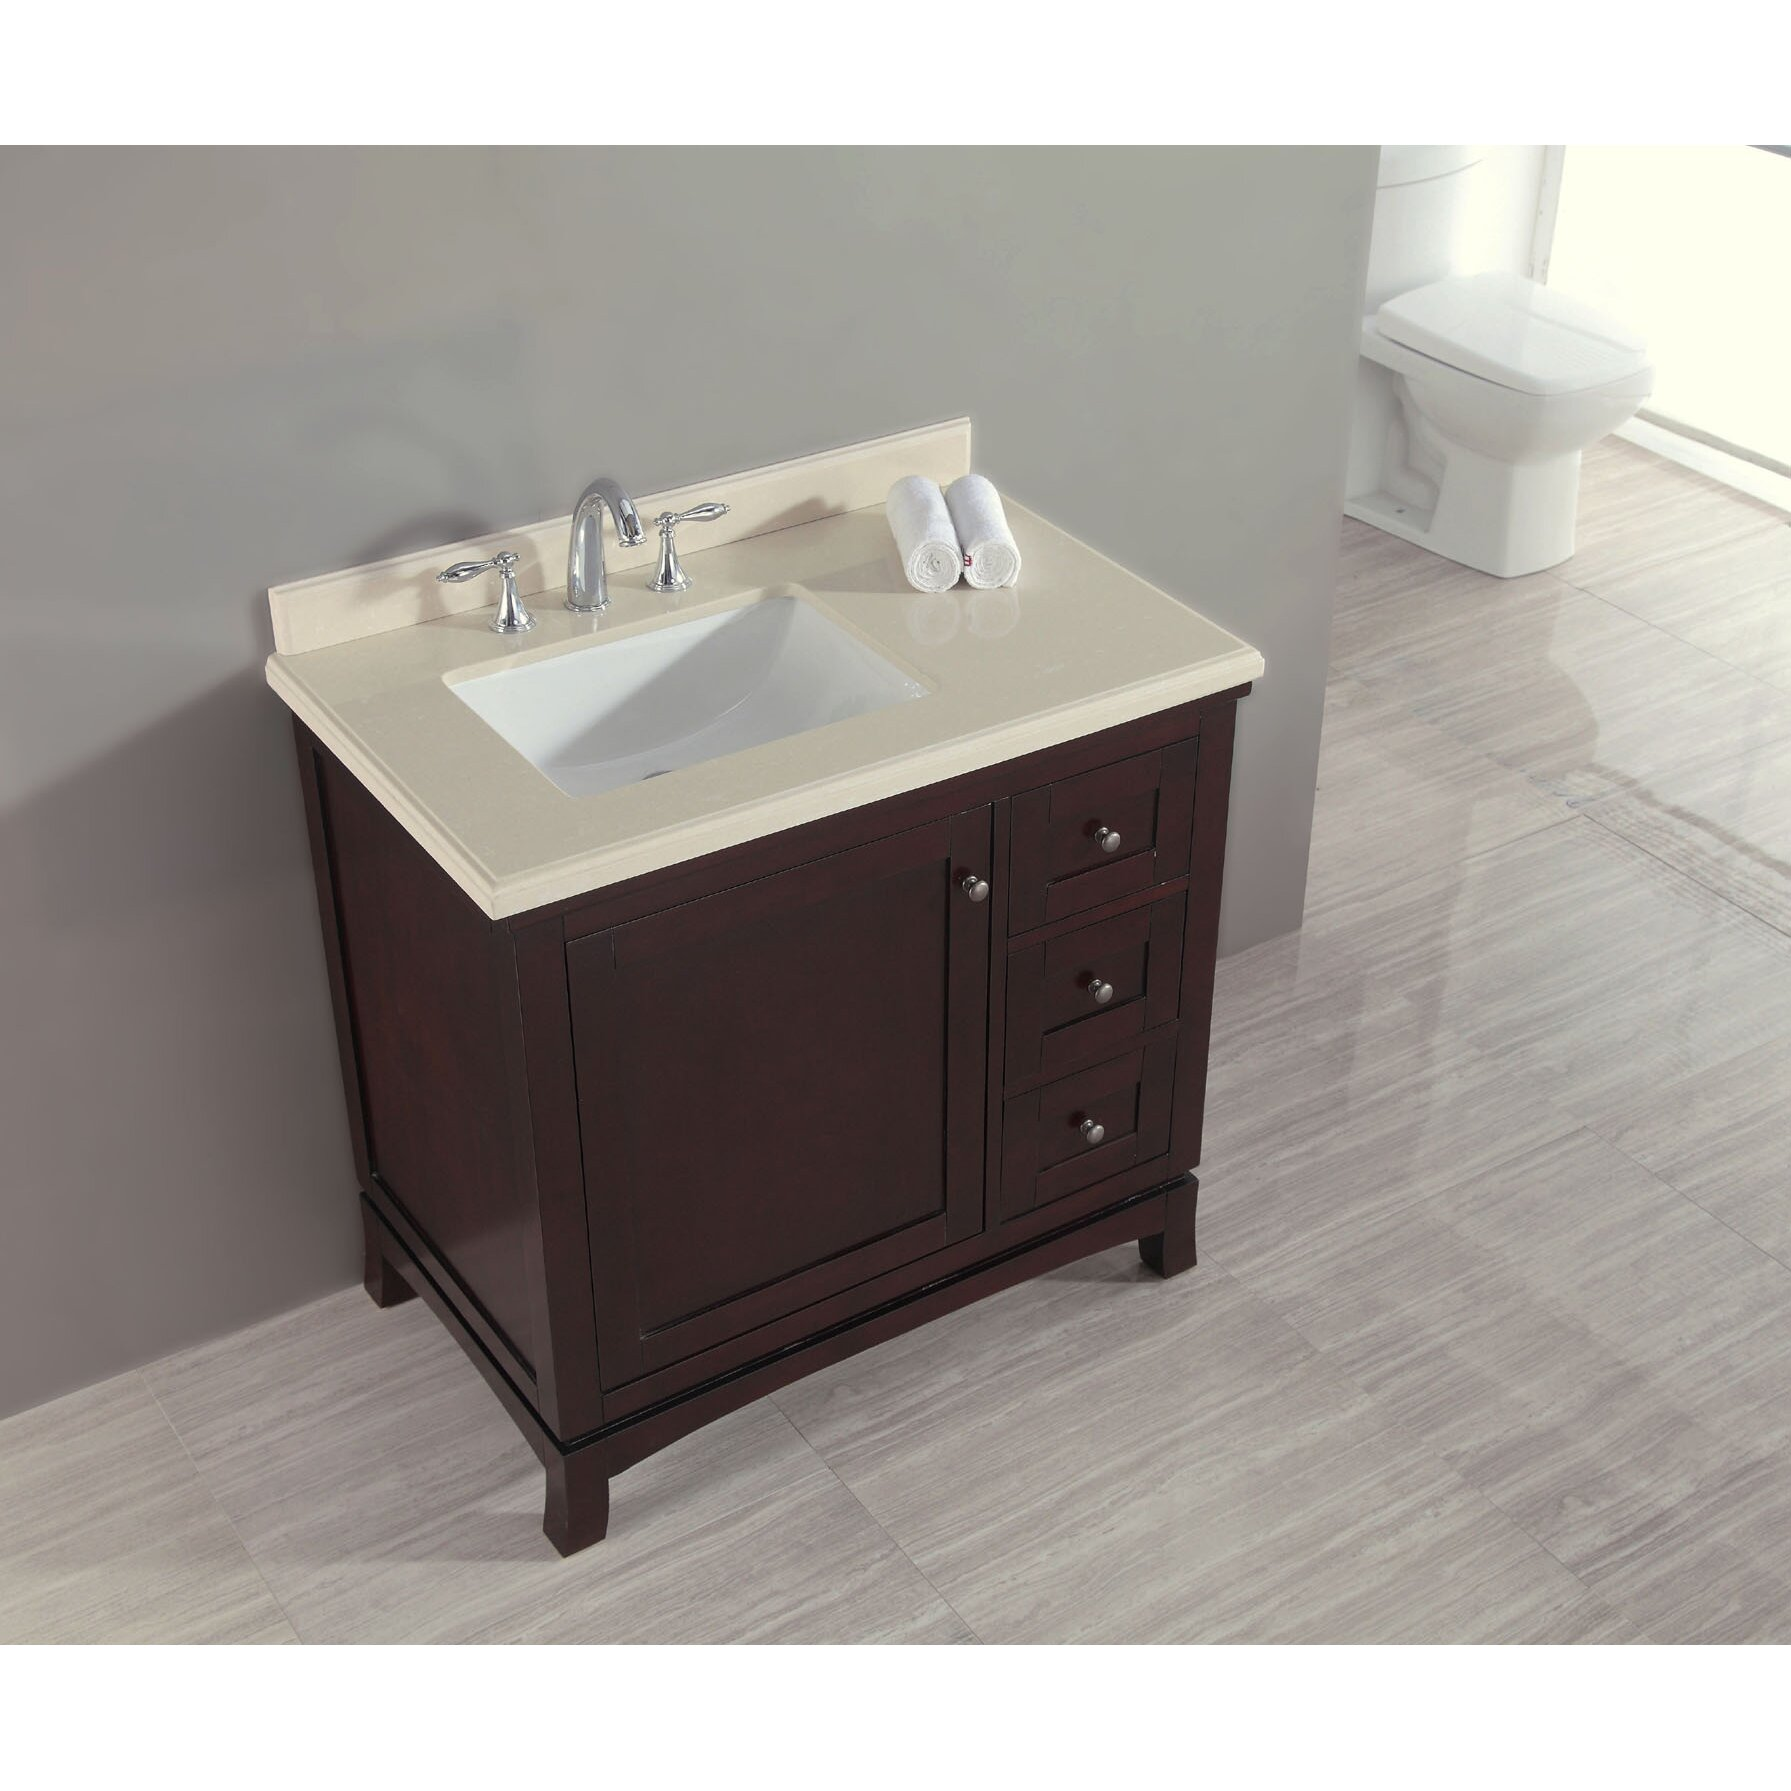 Ove decors valega 36 single bathroom vanity set reviews for Restroom vanity